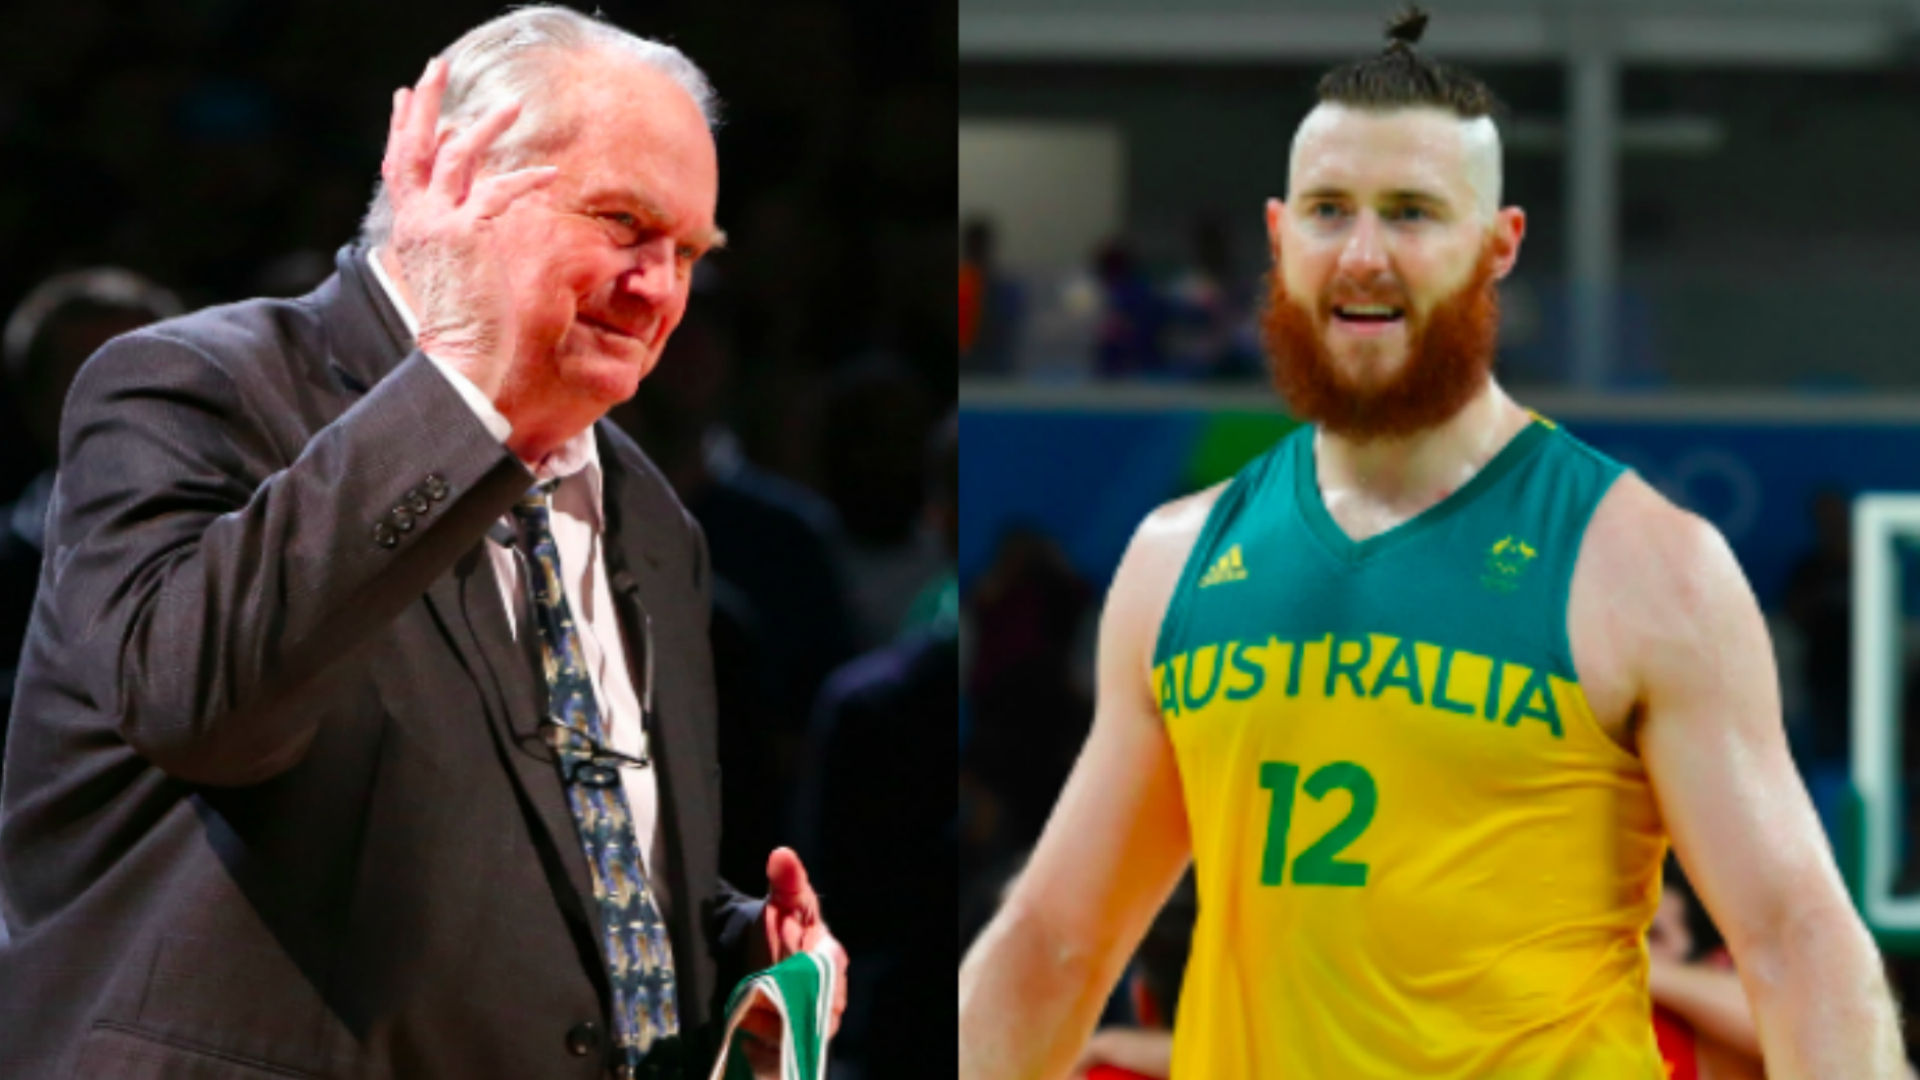 Tommy Heinsohn makes uncomfortable comment about Aron Baynes""